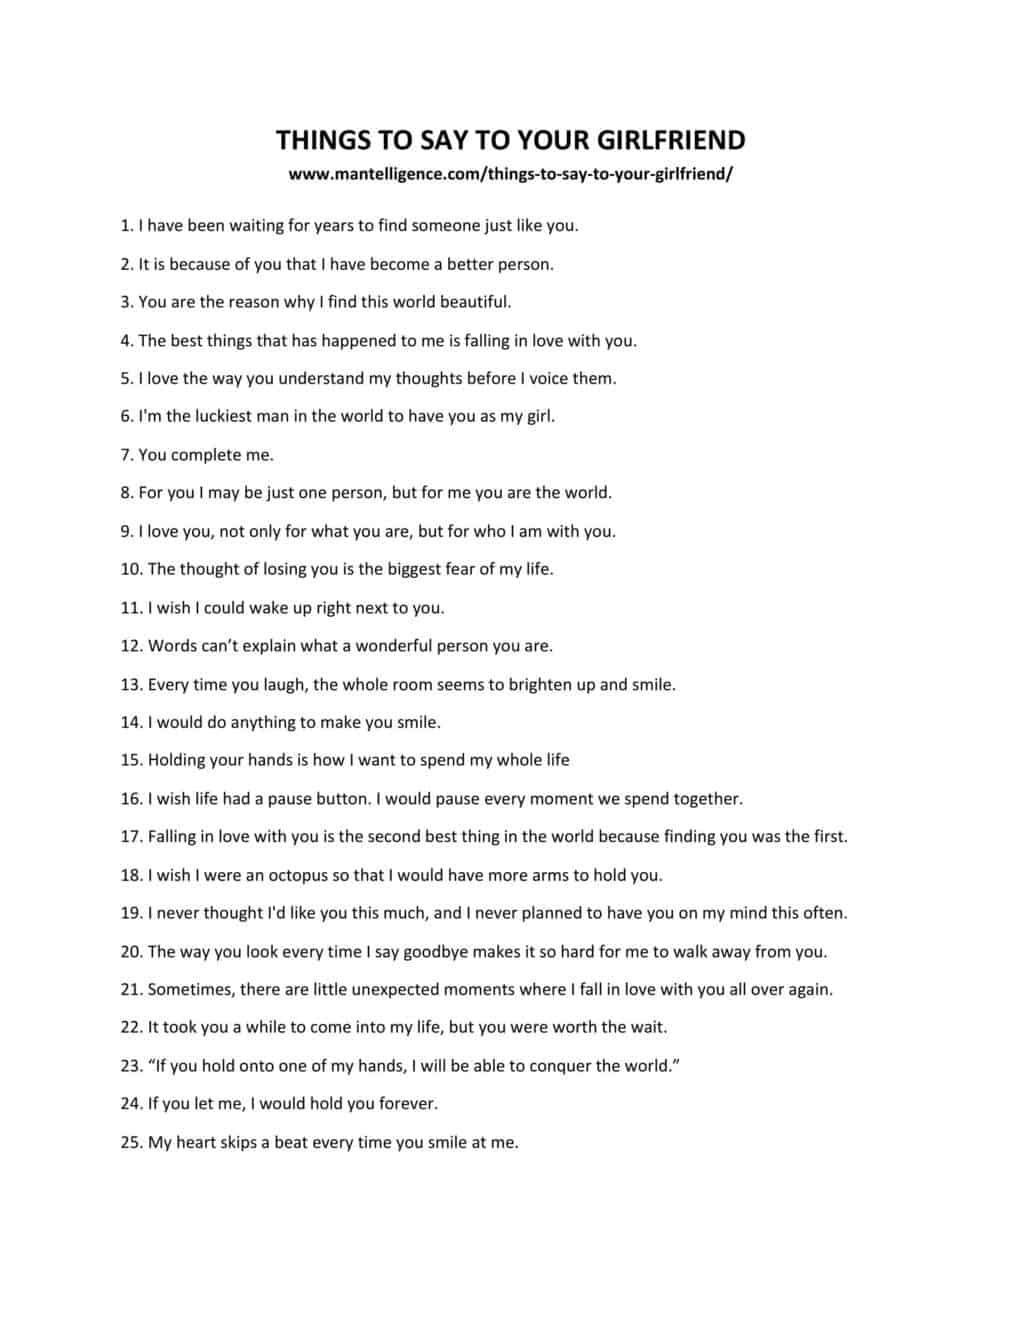 Things to say to make your girlfriend happy